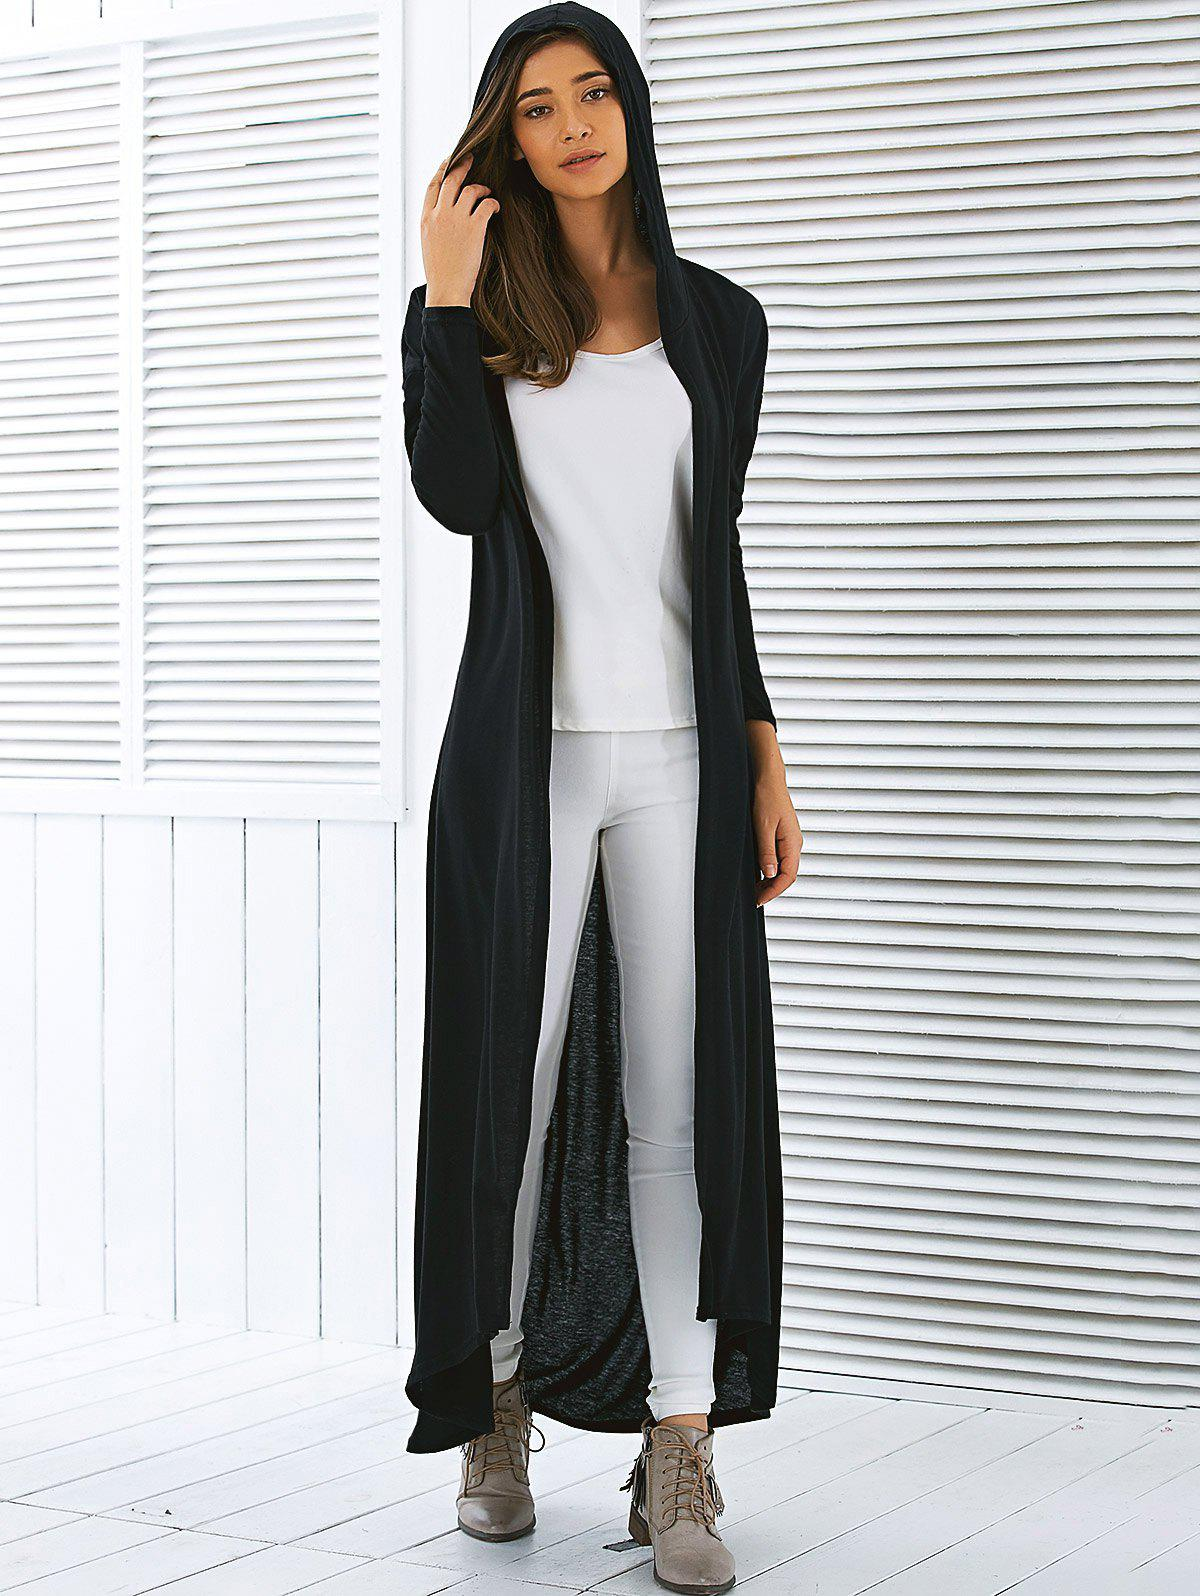 2018 Black Long Hooded Cardigan Online Store. Best Black Long ...